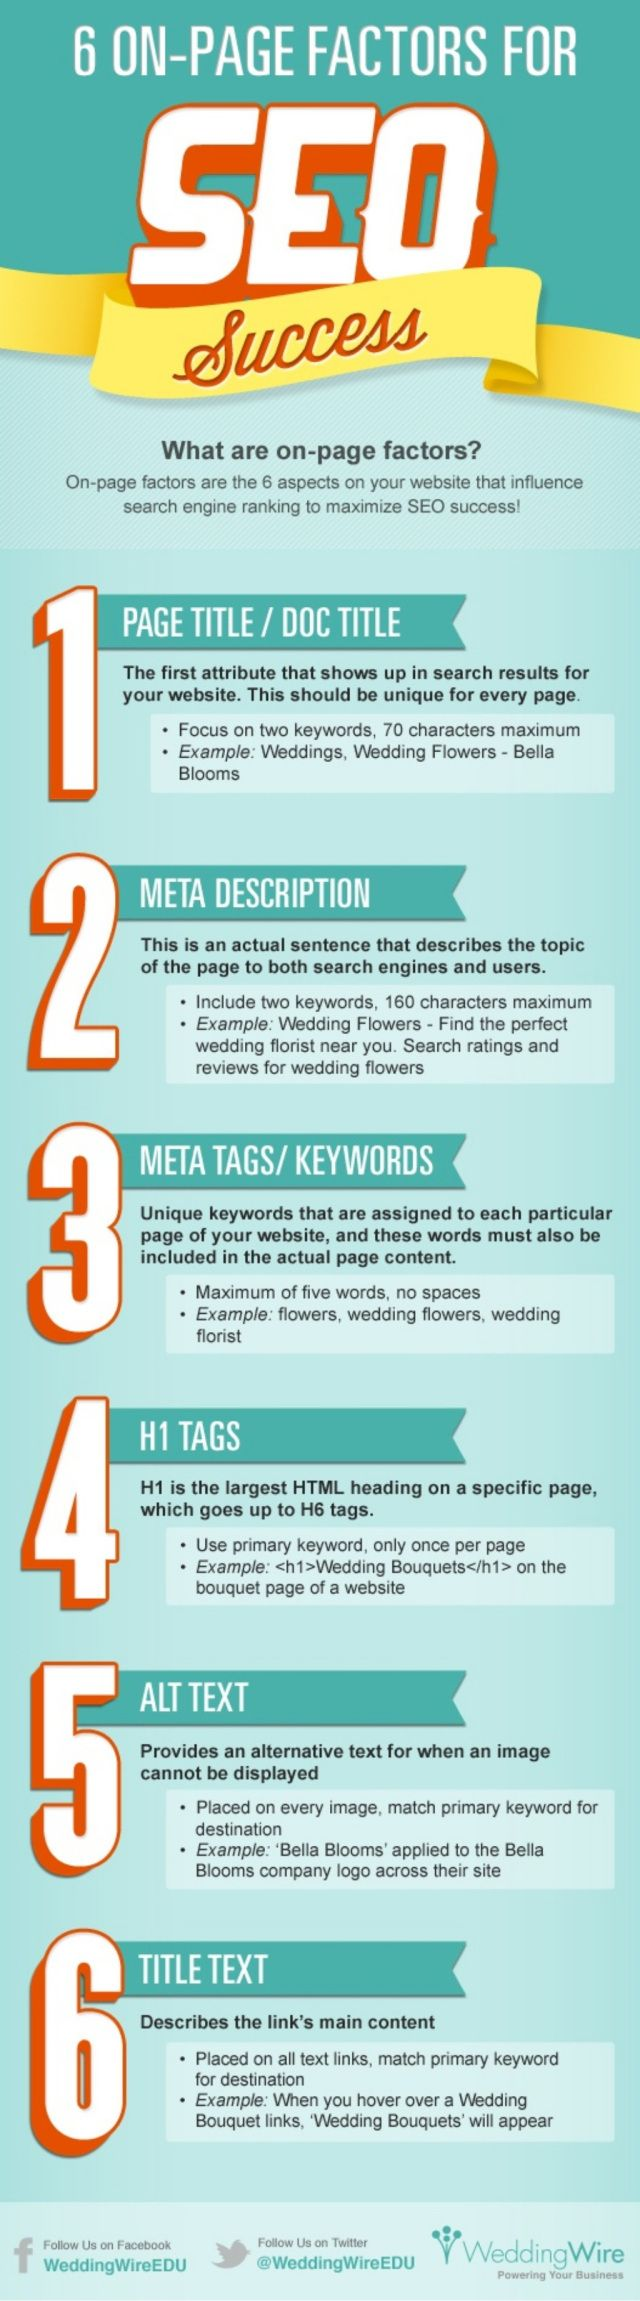 6 On-Page Factors For SEO Success #infographic